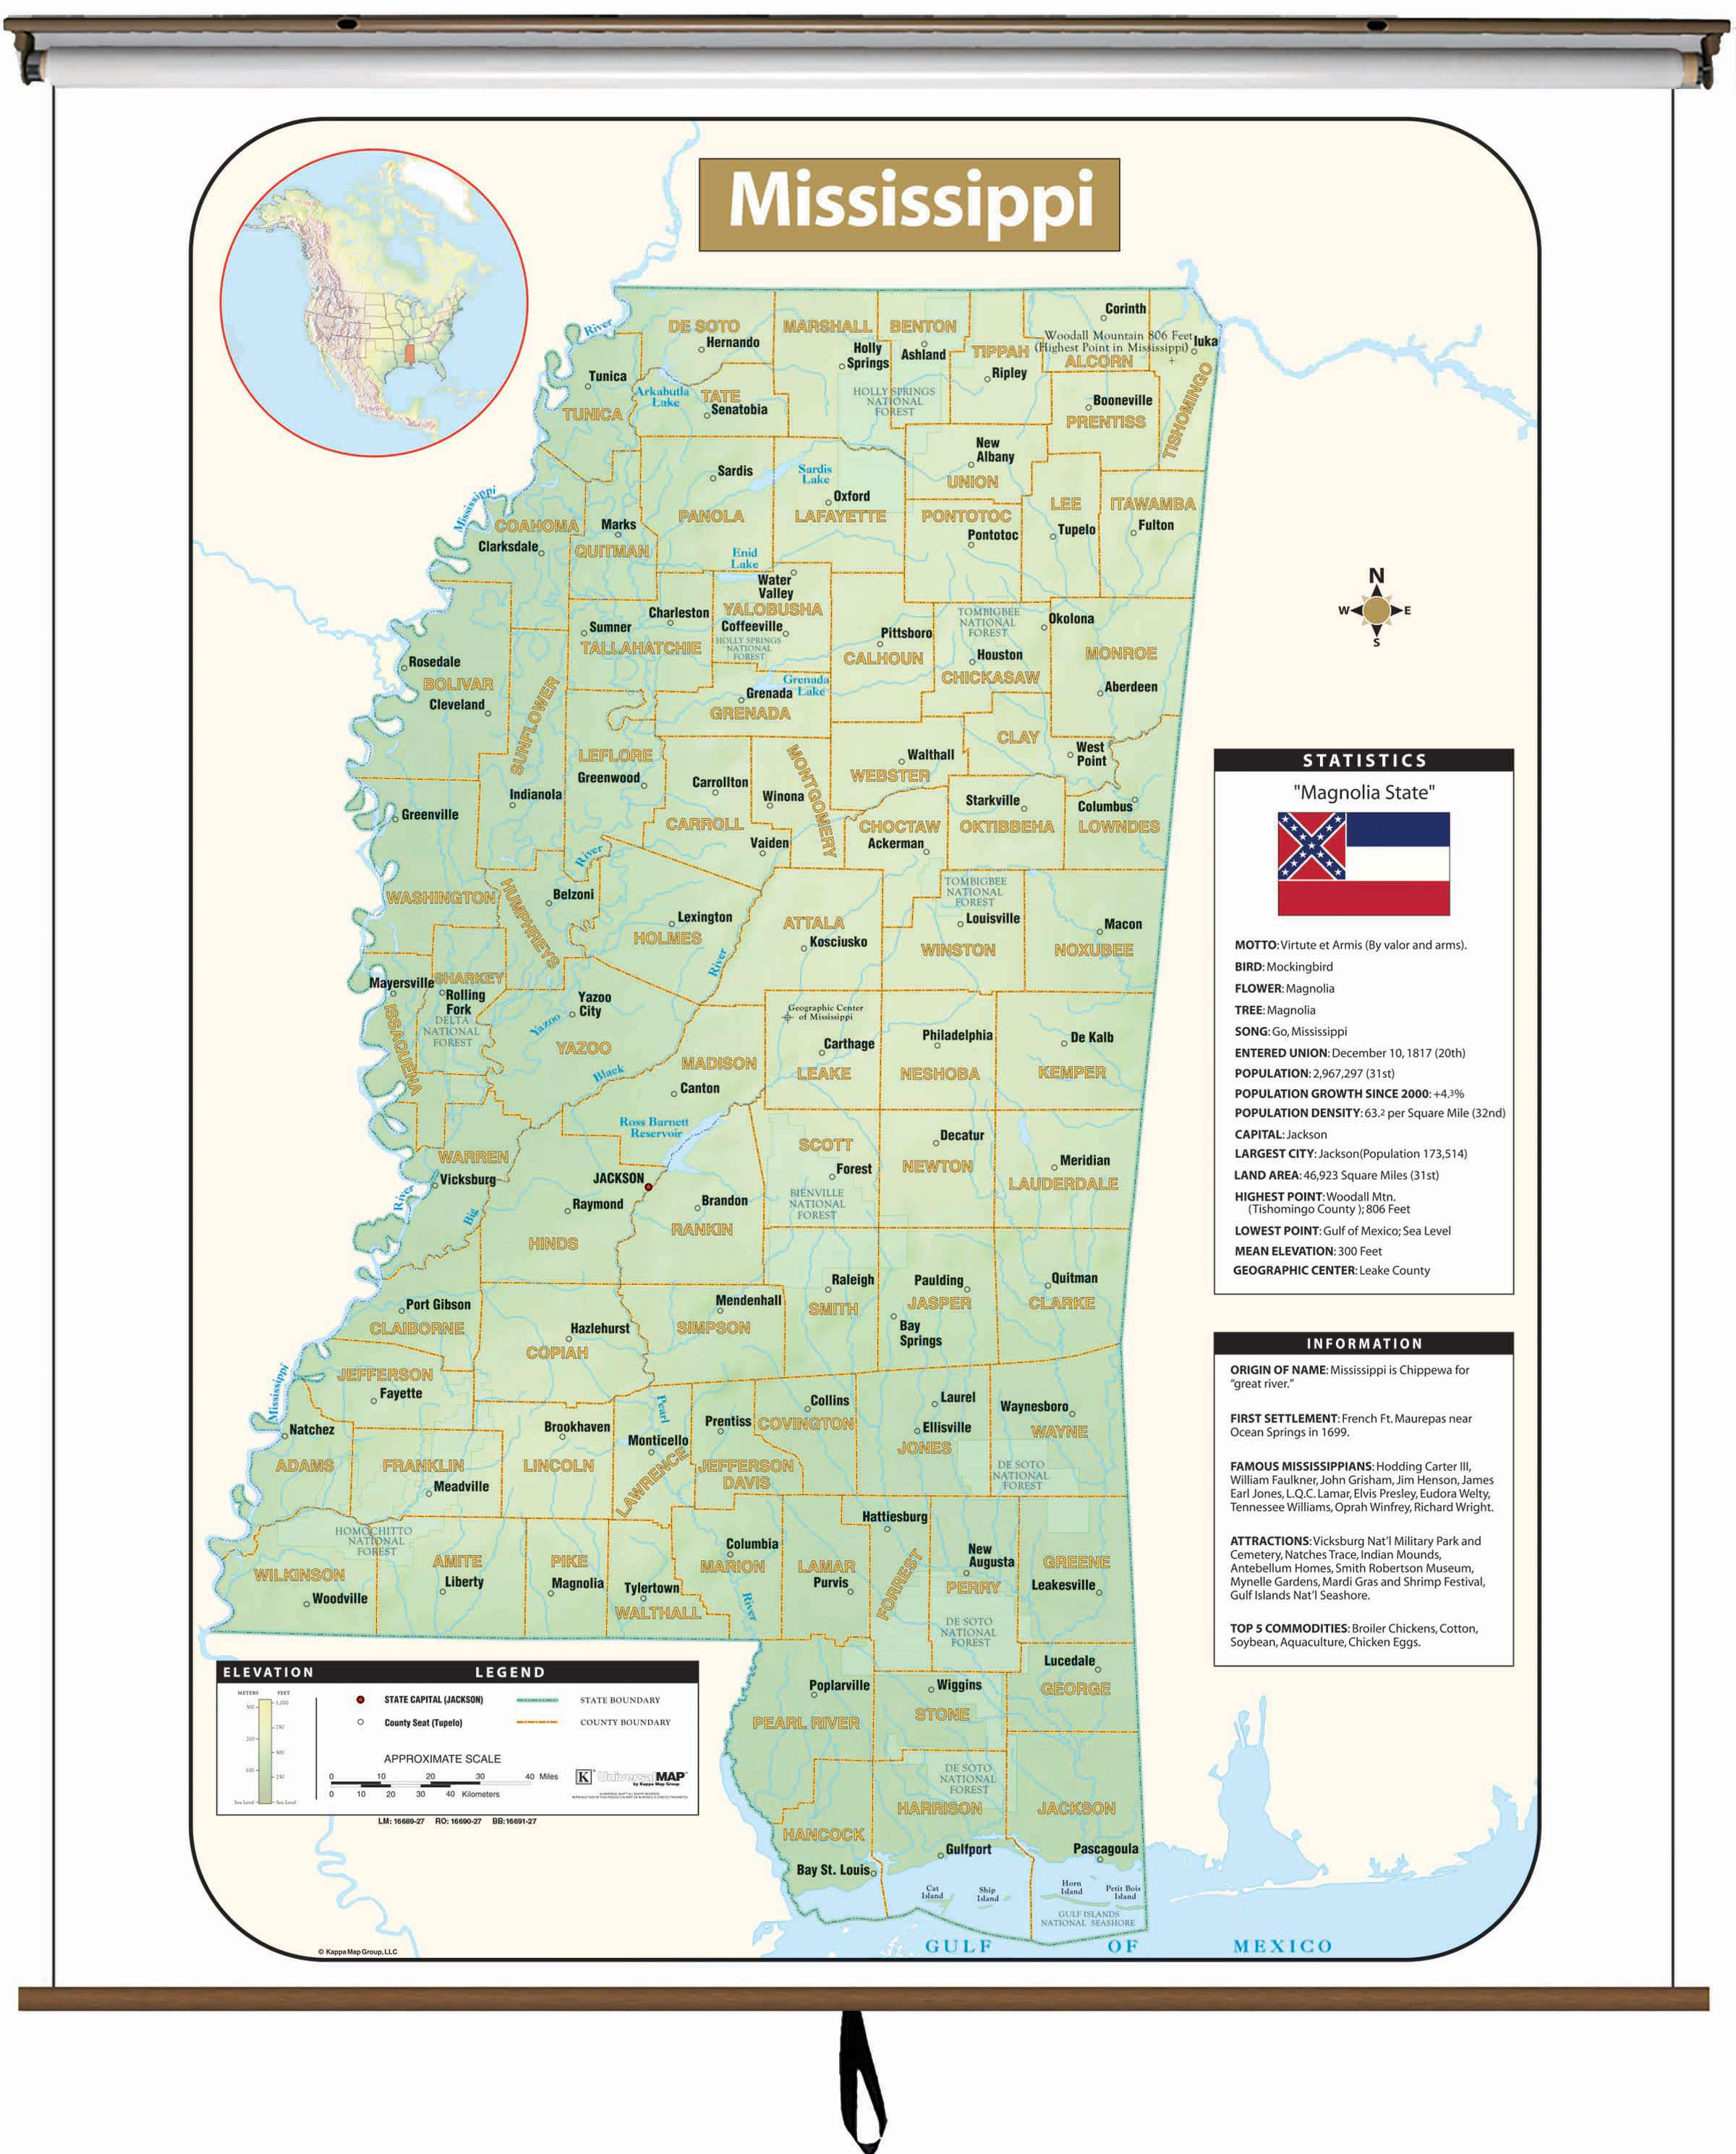 Mississippi Large Scale Shaded Relief Wall Map on Roller with